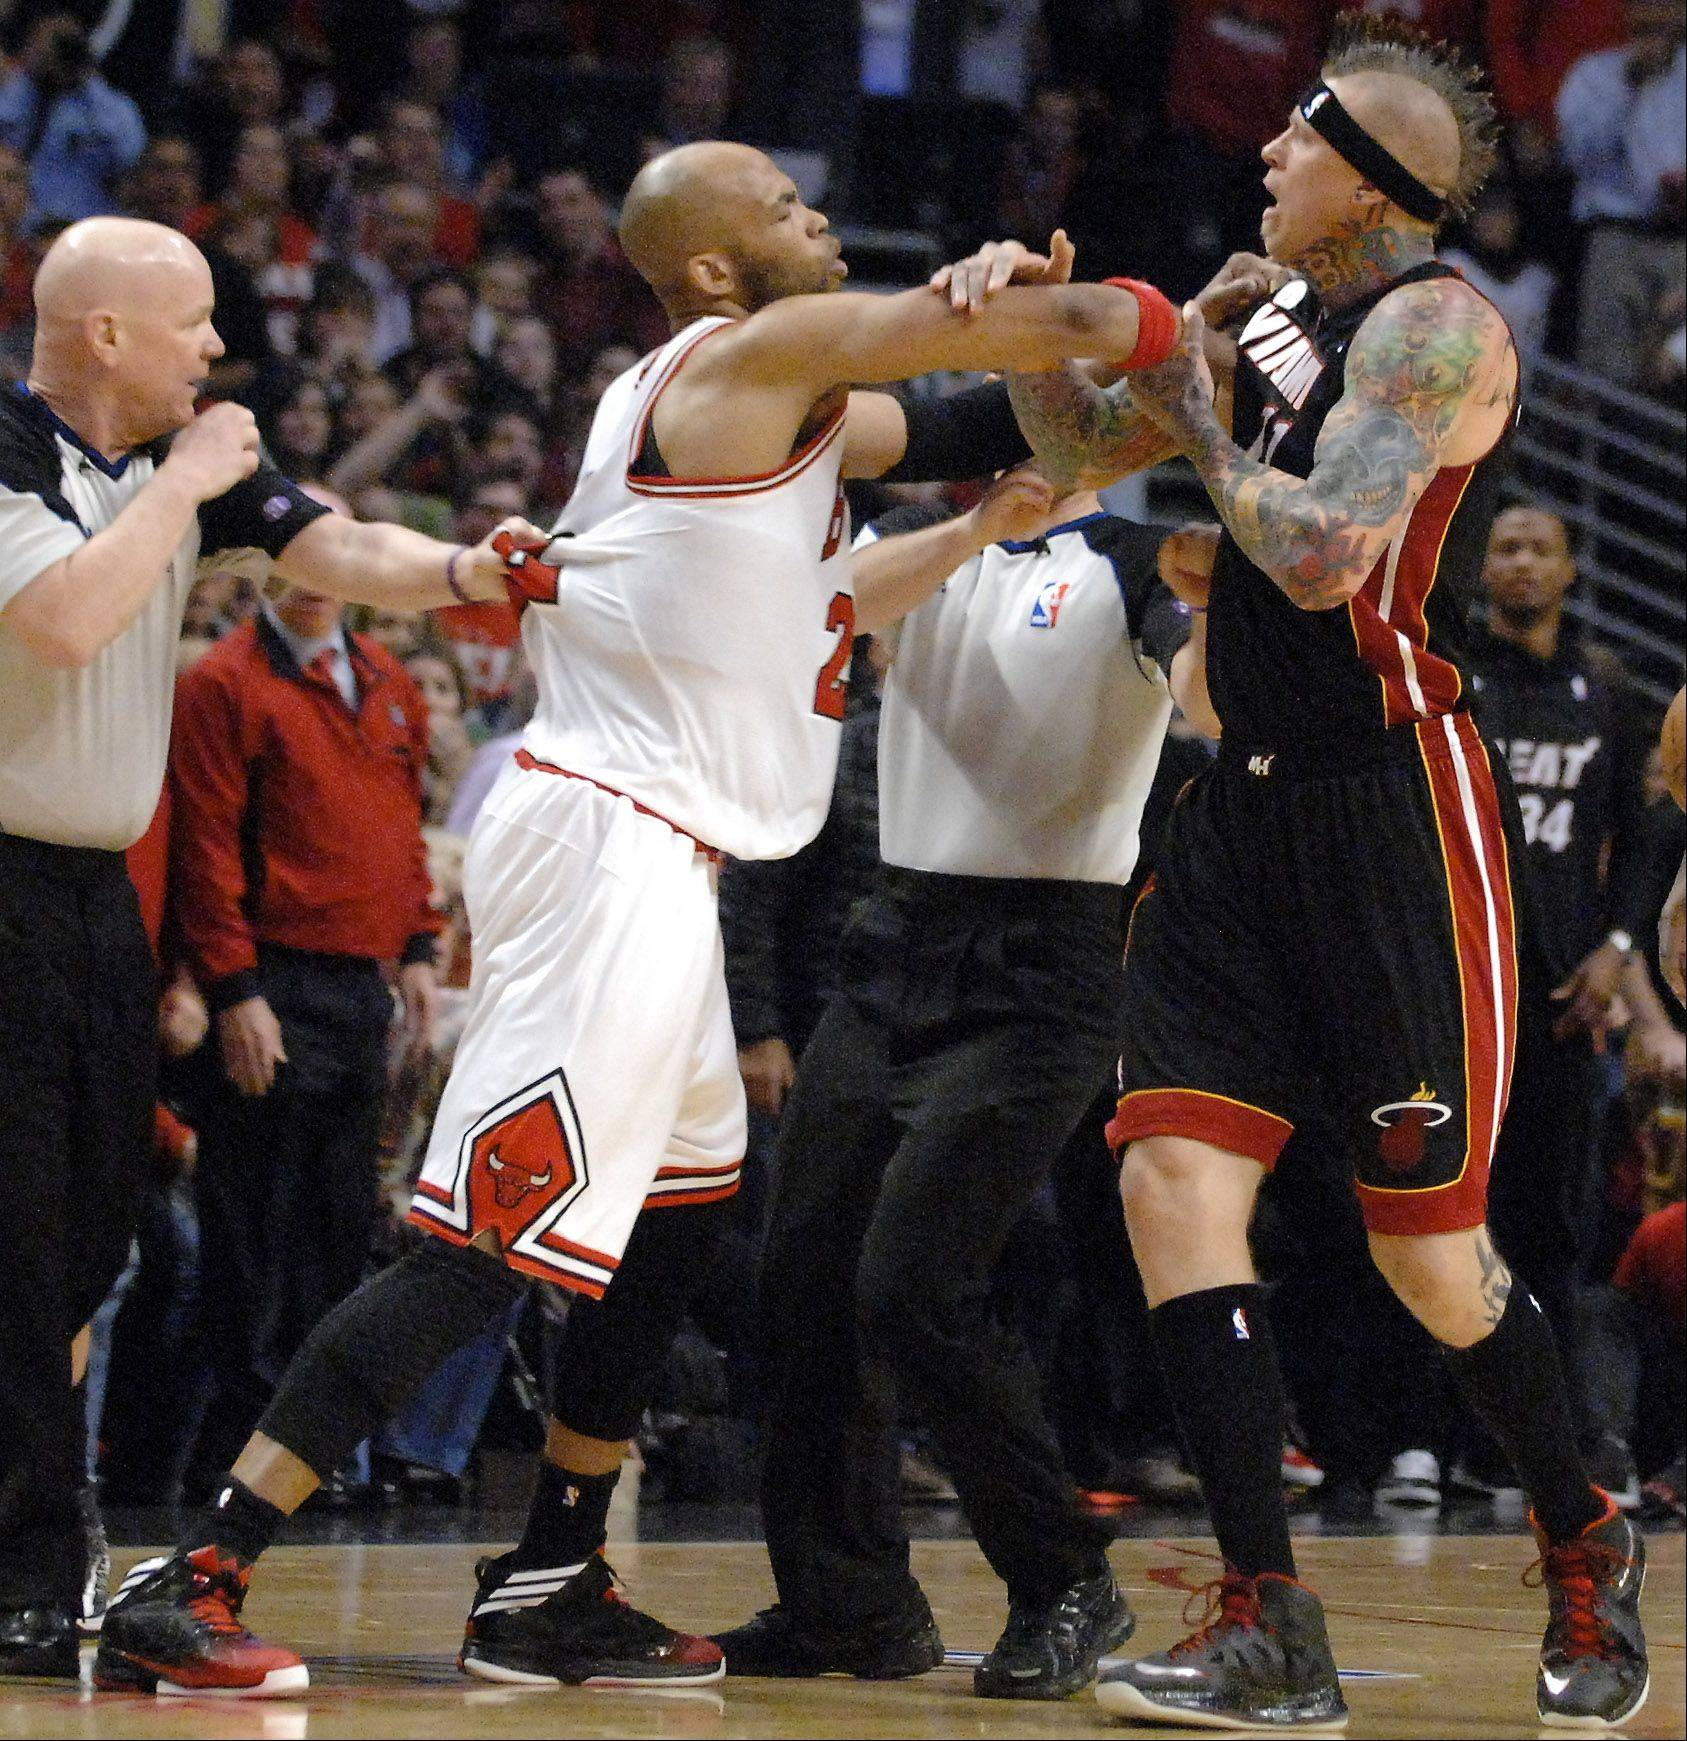 Rick West/rwest@dailyherald.comChicago Bulls power forward Taj Gibson (22) and Miami Heat power forward Chris Andersen (11) get in a shoving match following Nazr Mohammed foul on LeBron James during game 3 of the NBA Eastern Conference semifinals at the United Center in Chicago Friday.